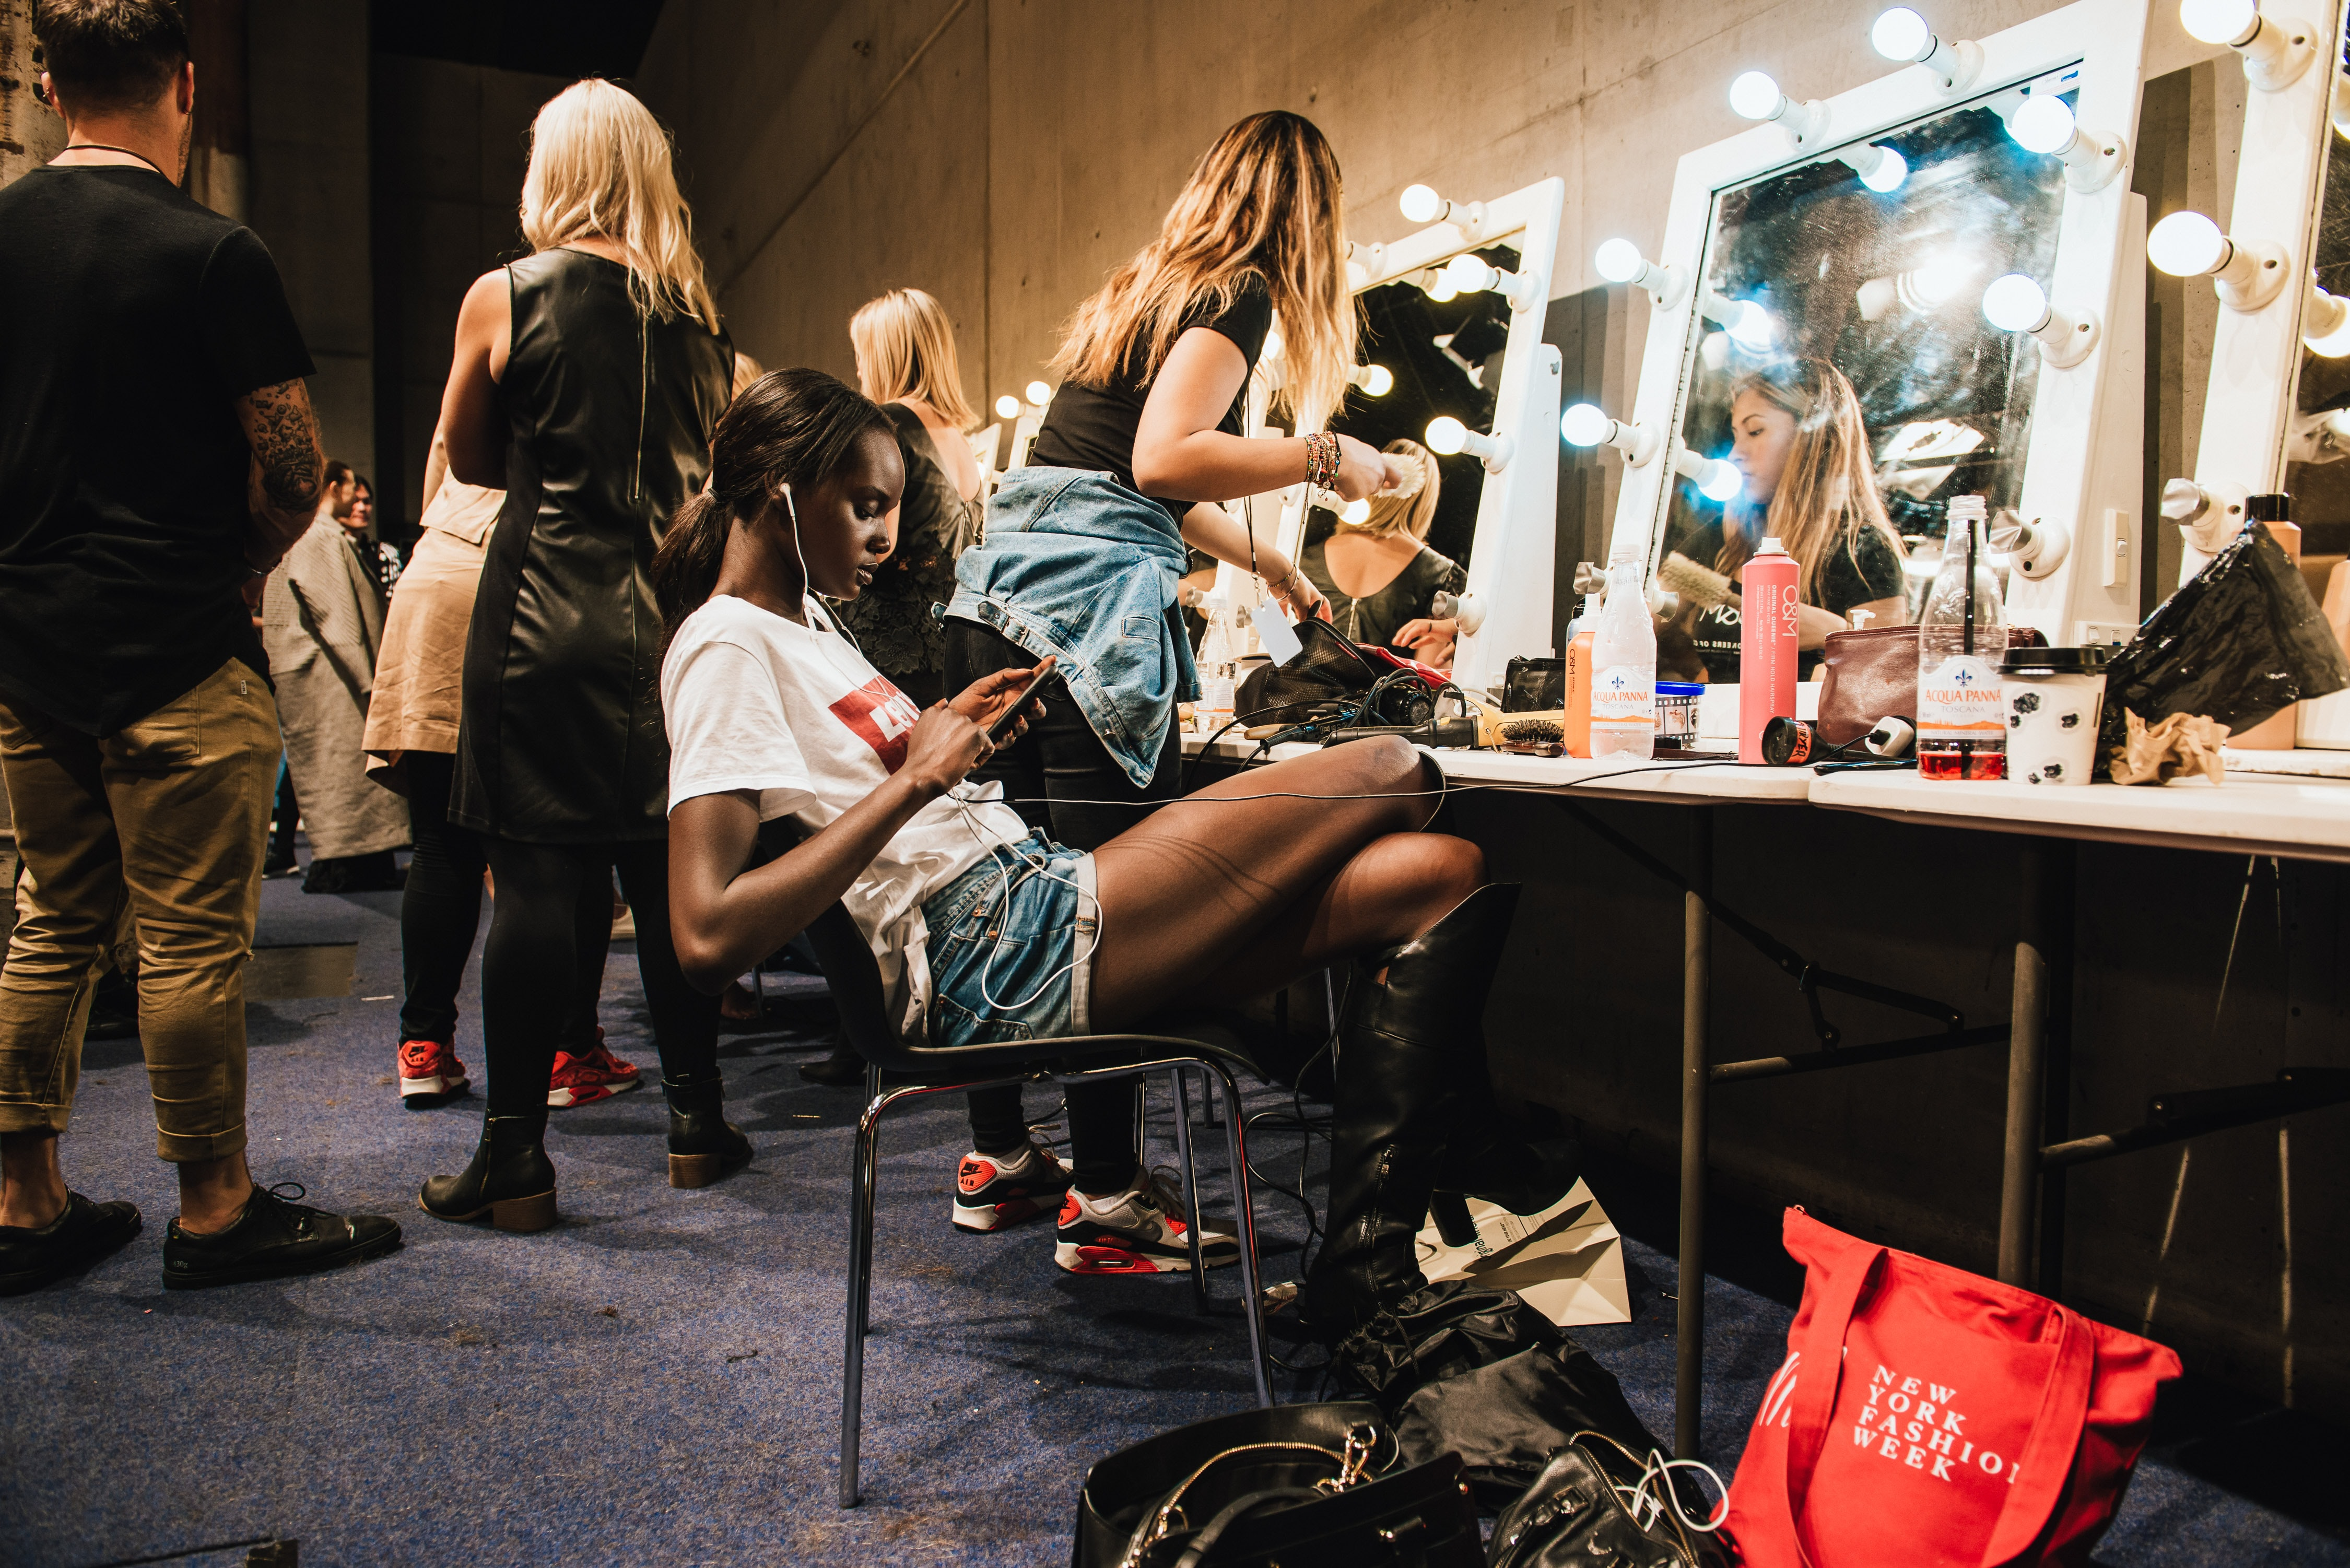 Models backstage at a runway show getting ready and relaxing